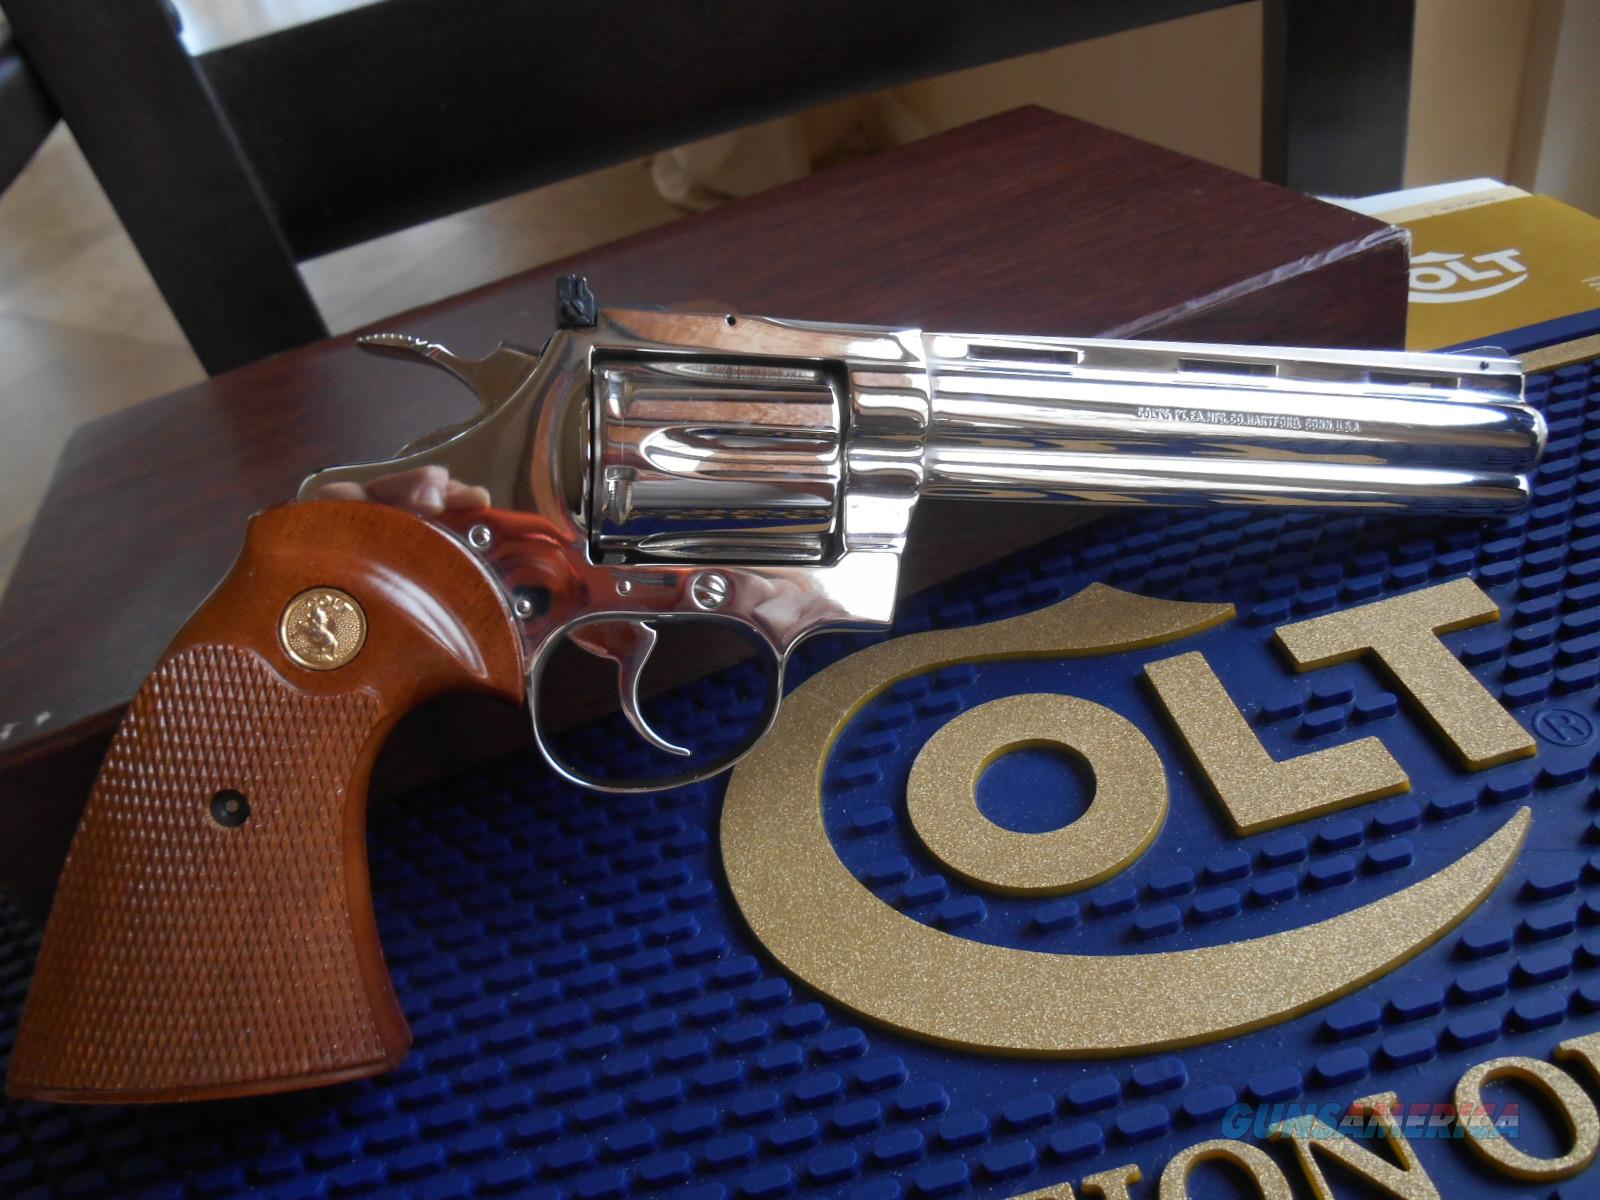 COLT DIAMONDBACK .22LR - Bright Nickel -   Guns > Pistols > Colt Double Action Revolvers- Modern